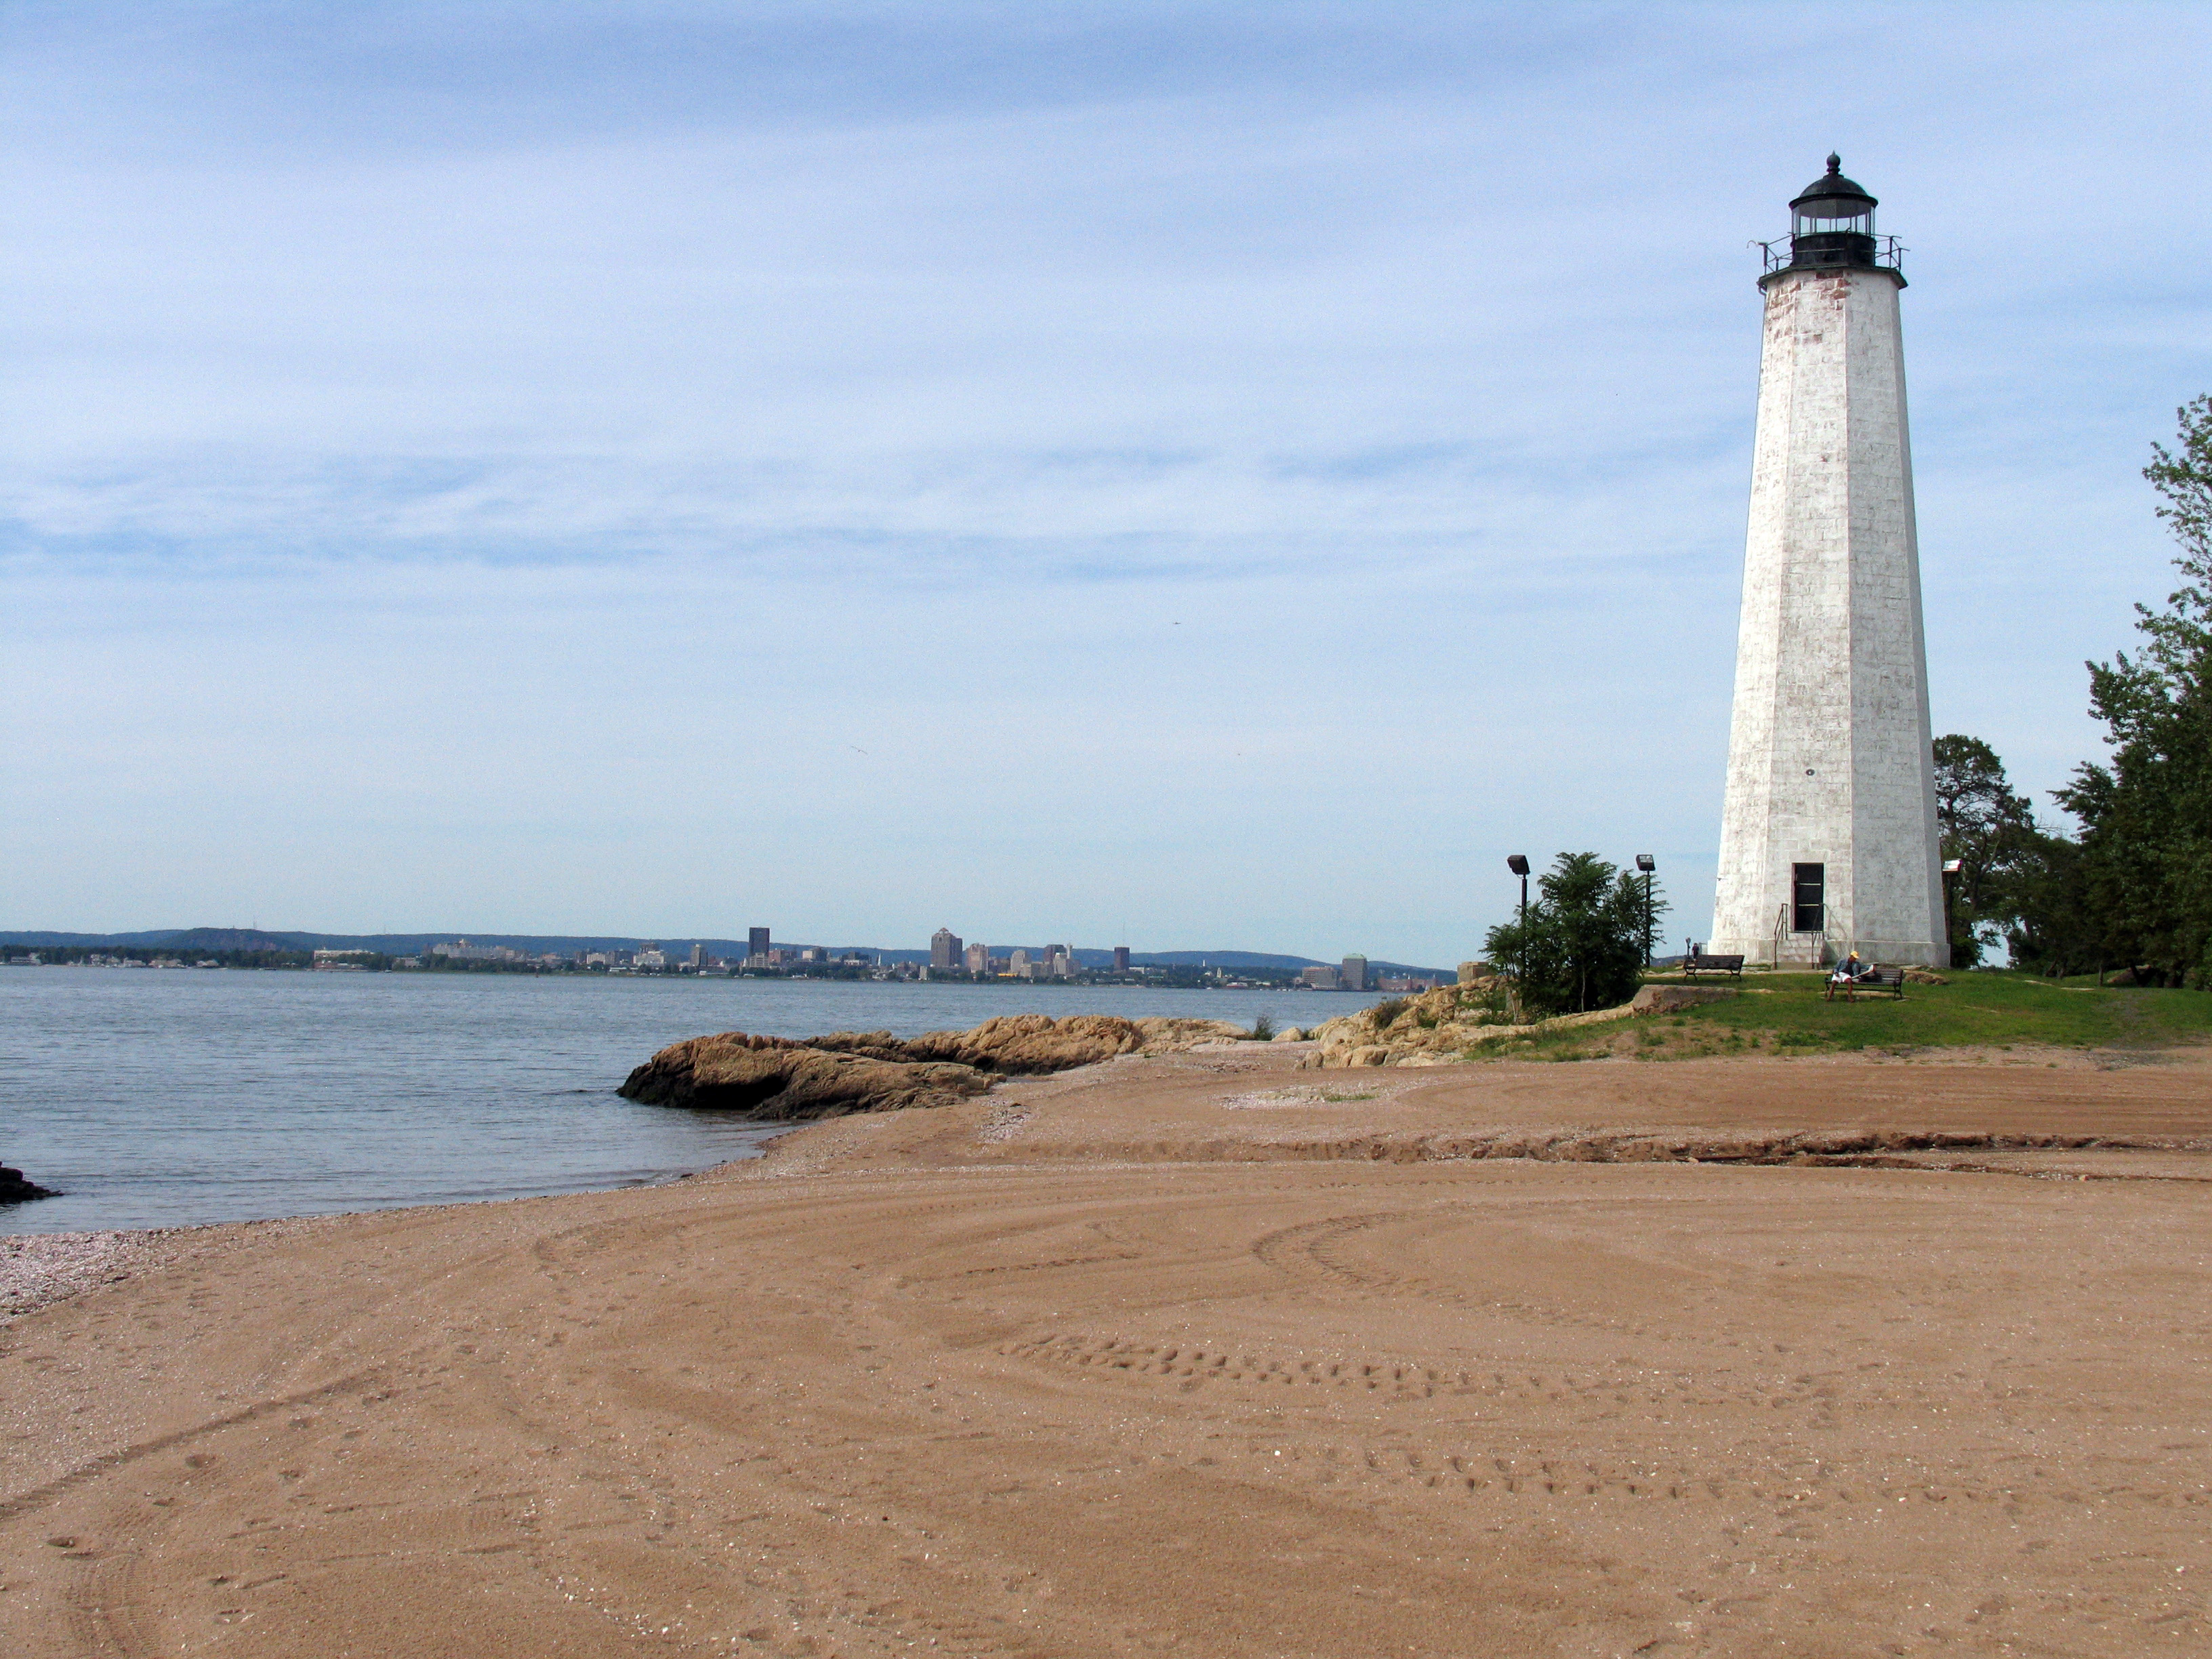 View of the Five Mile Point Light